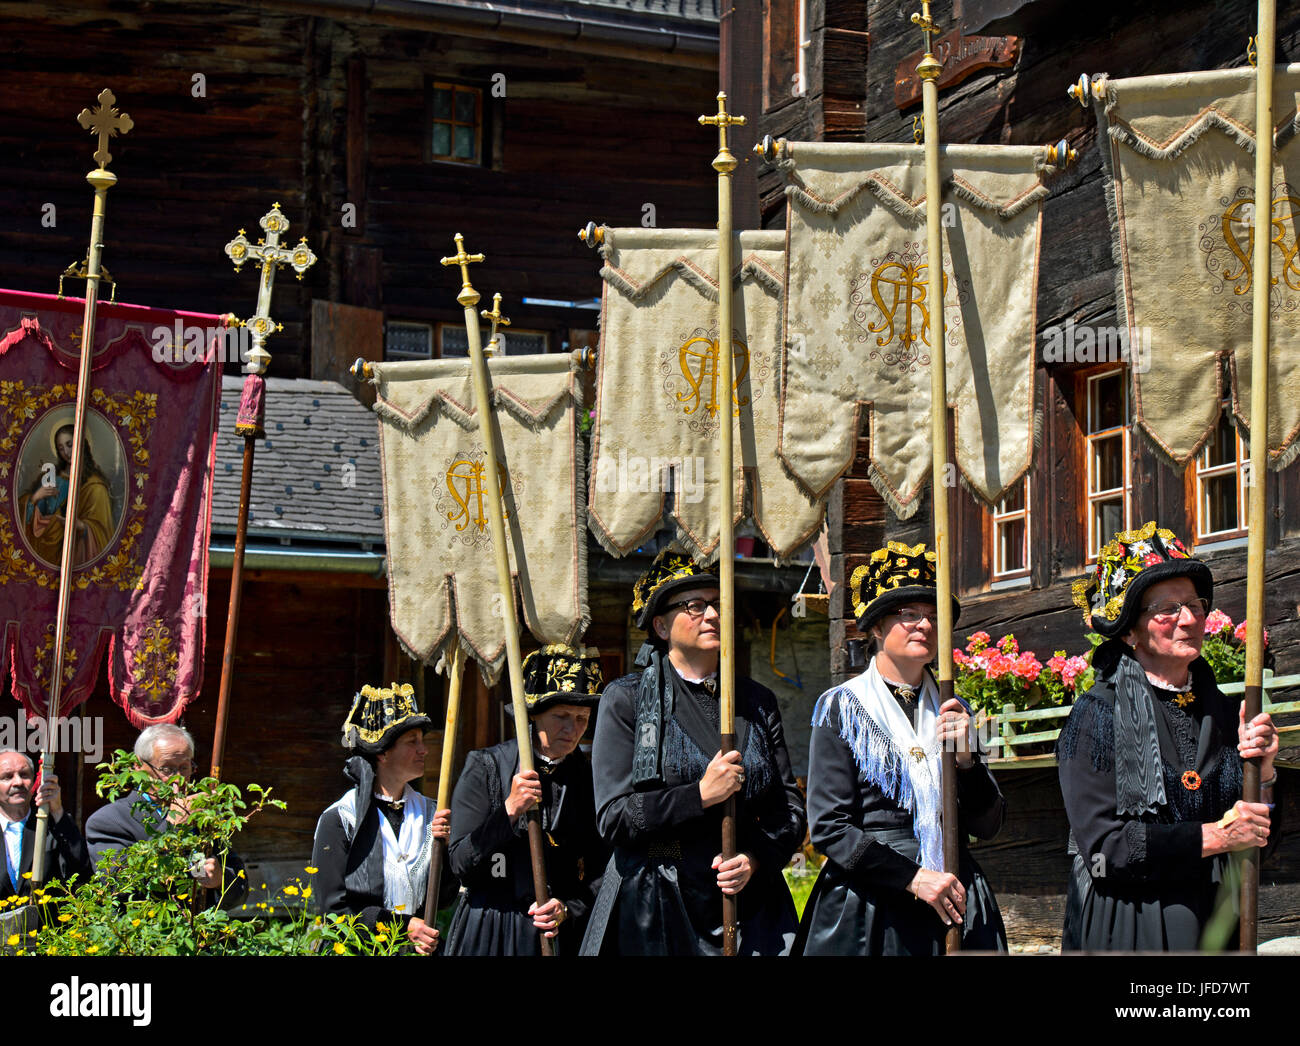 Woman in traditional costumes with church banners, flags, Corpus Christi procession, Blatten, Lötschental, - Stock Image